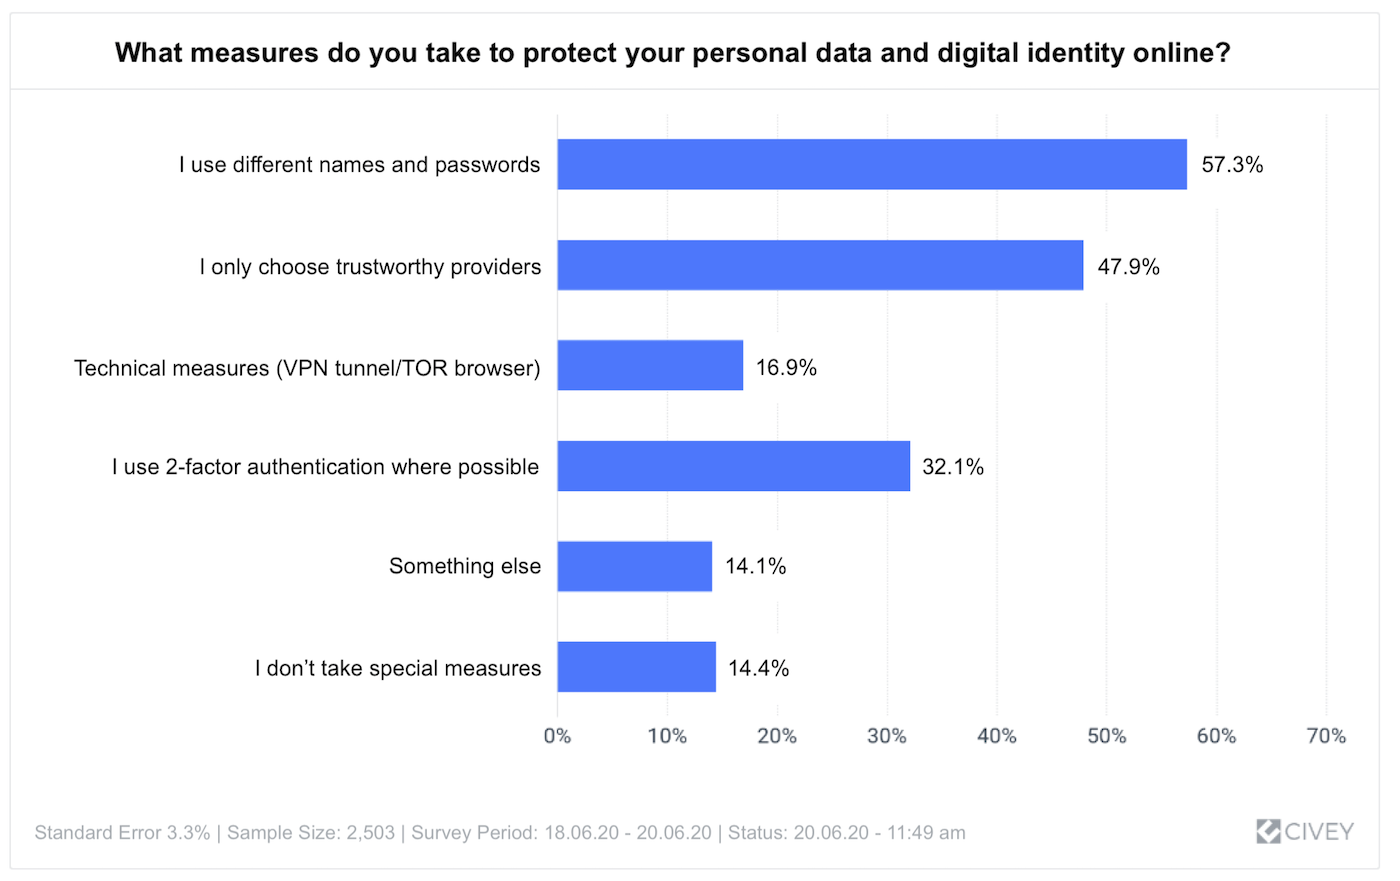 Protection of personal data